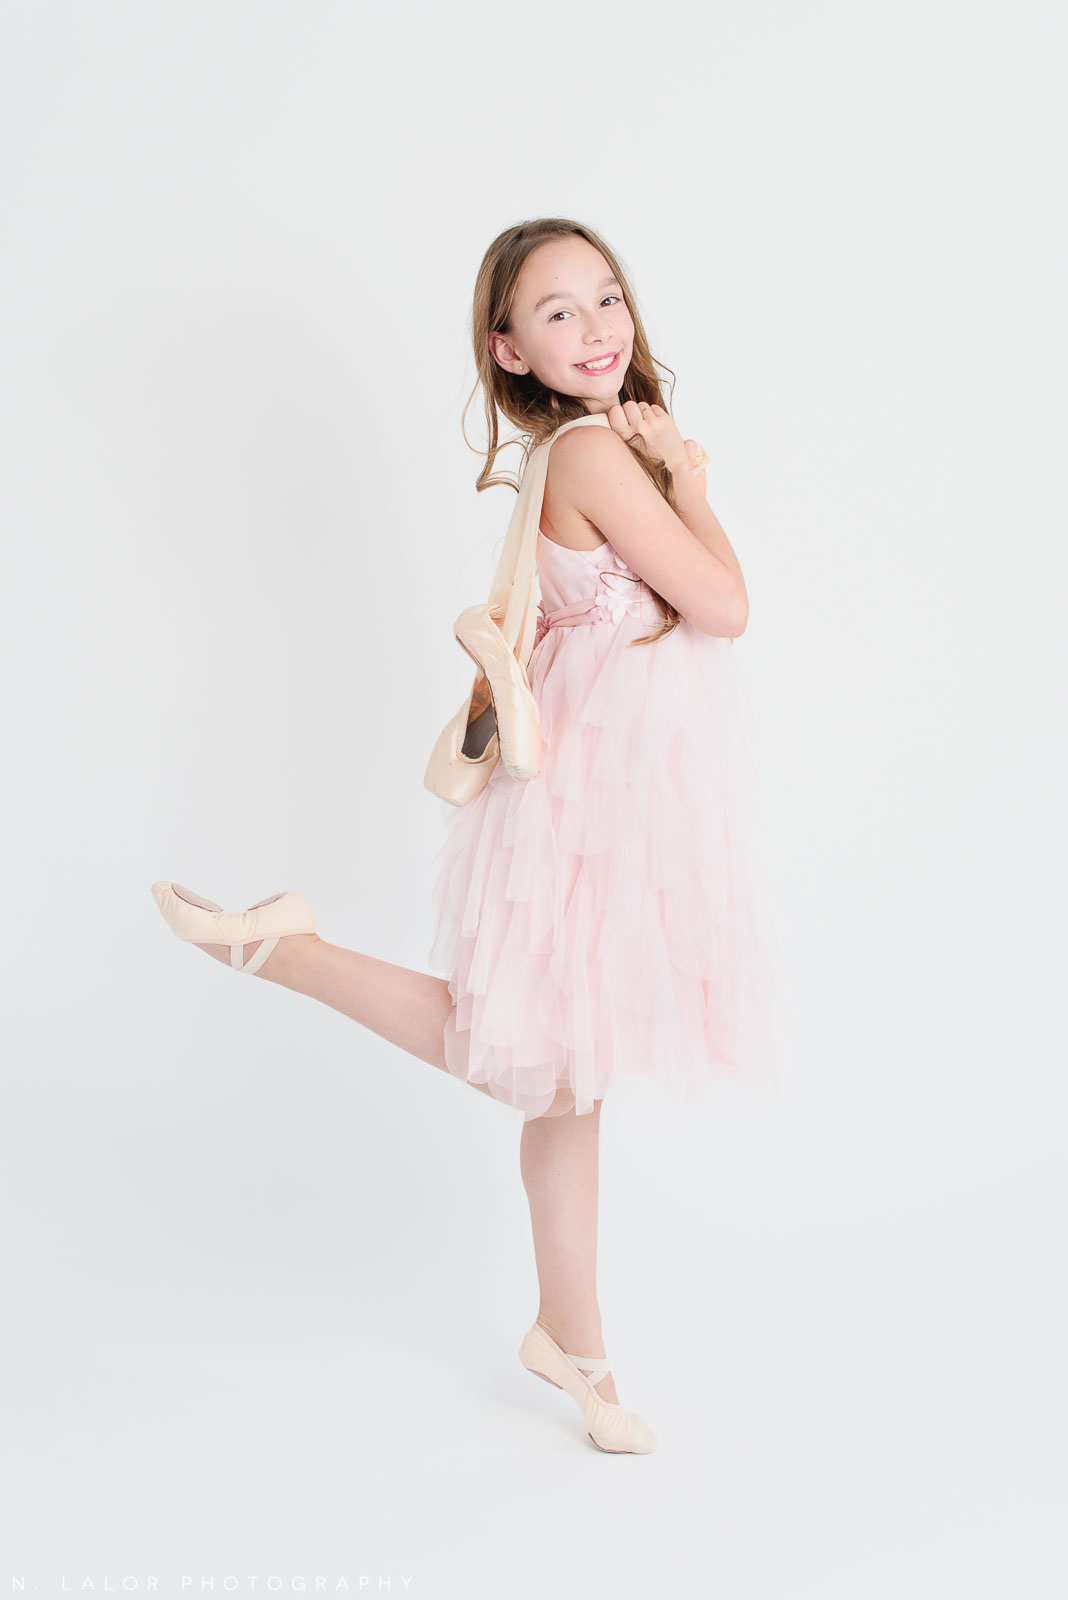 Posing with pointe shoes. Ballerina photoshoot with N. Lalor Photography. Greenwich, Connecticut.